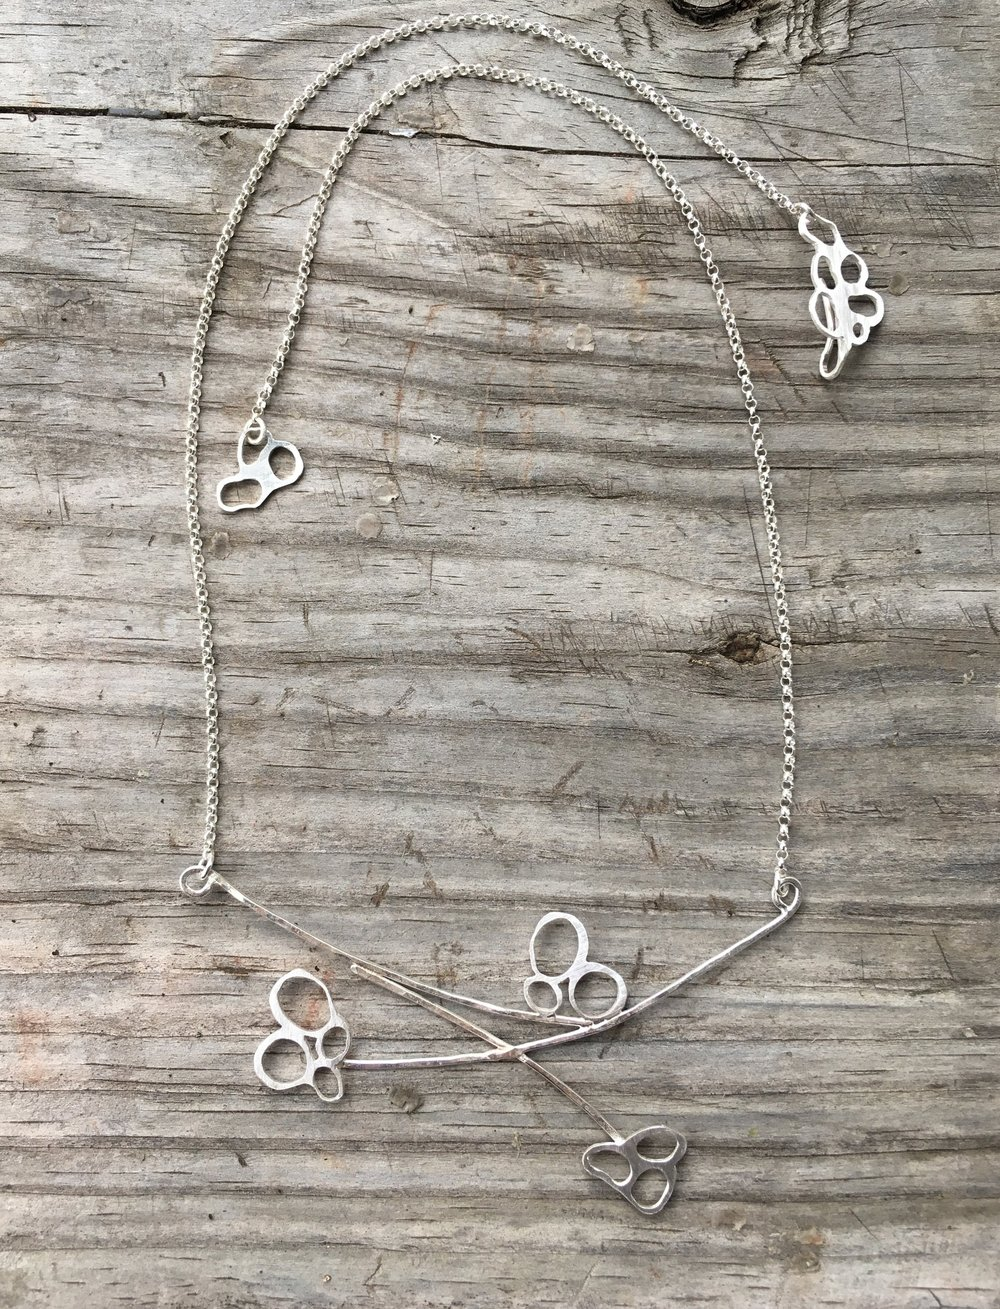 Paw print necklace in sterling silver